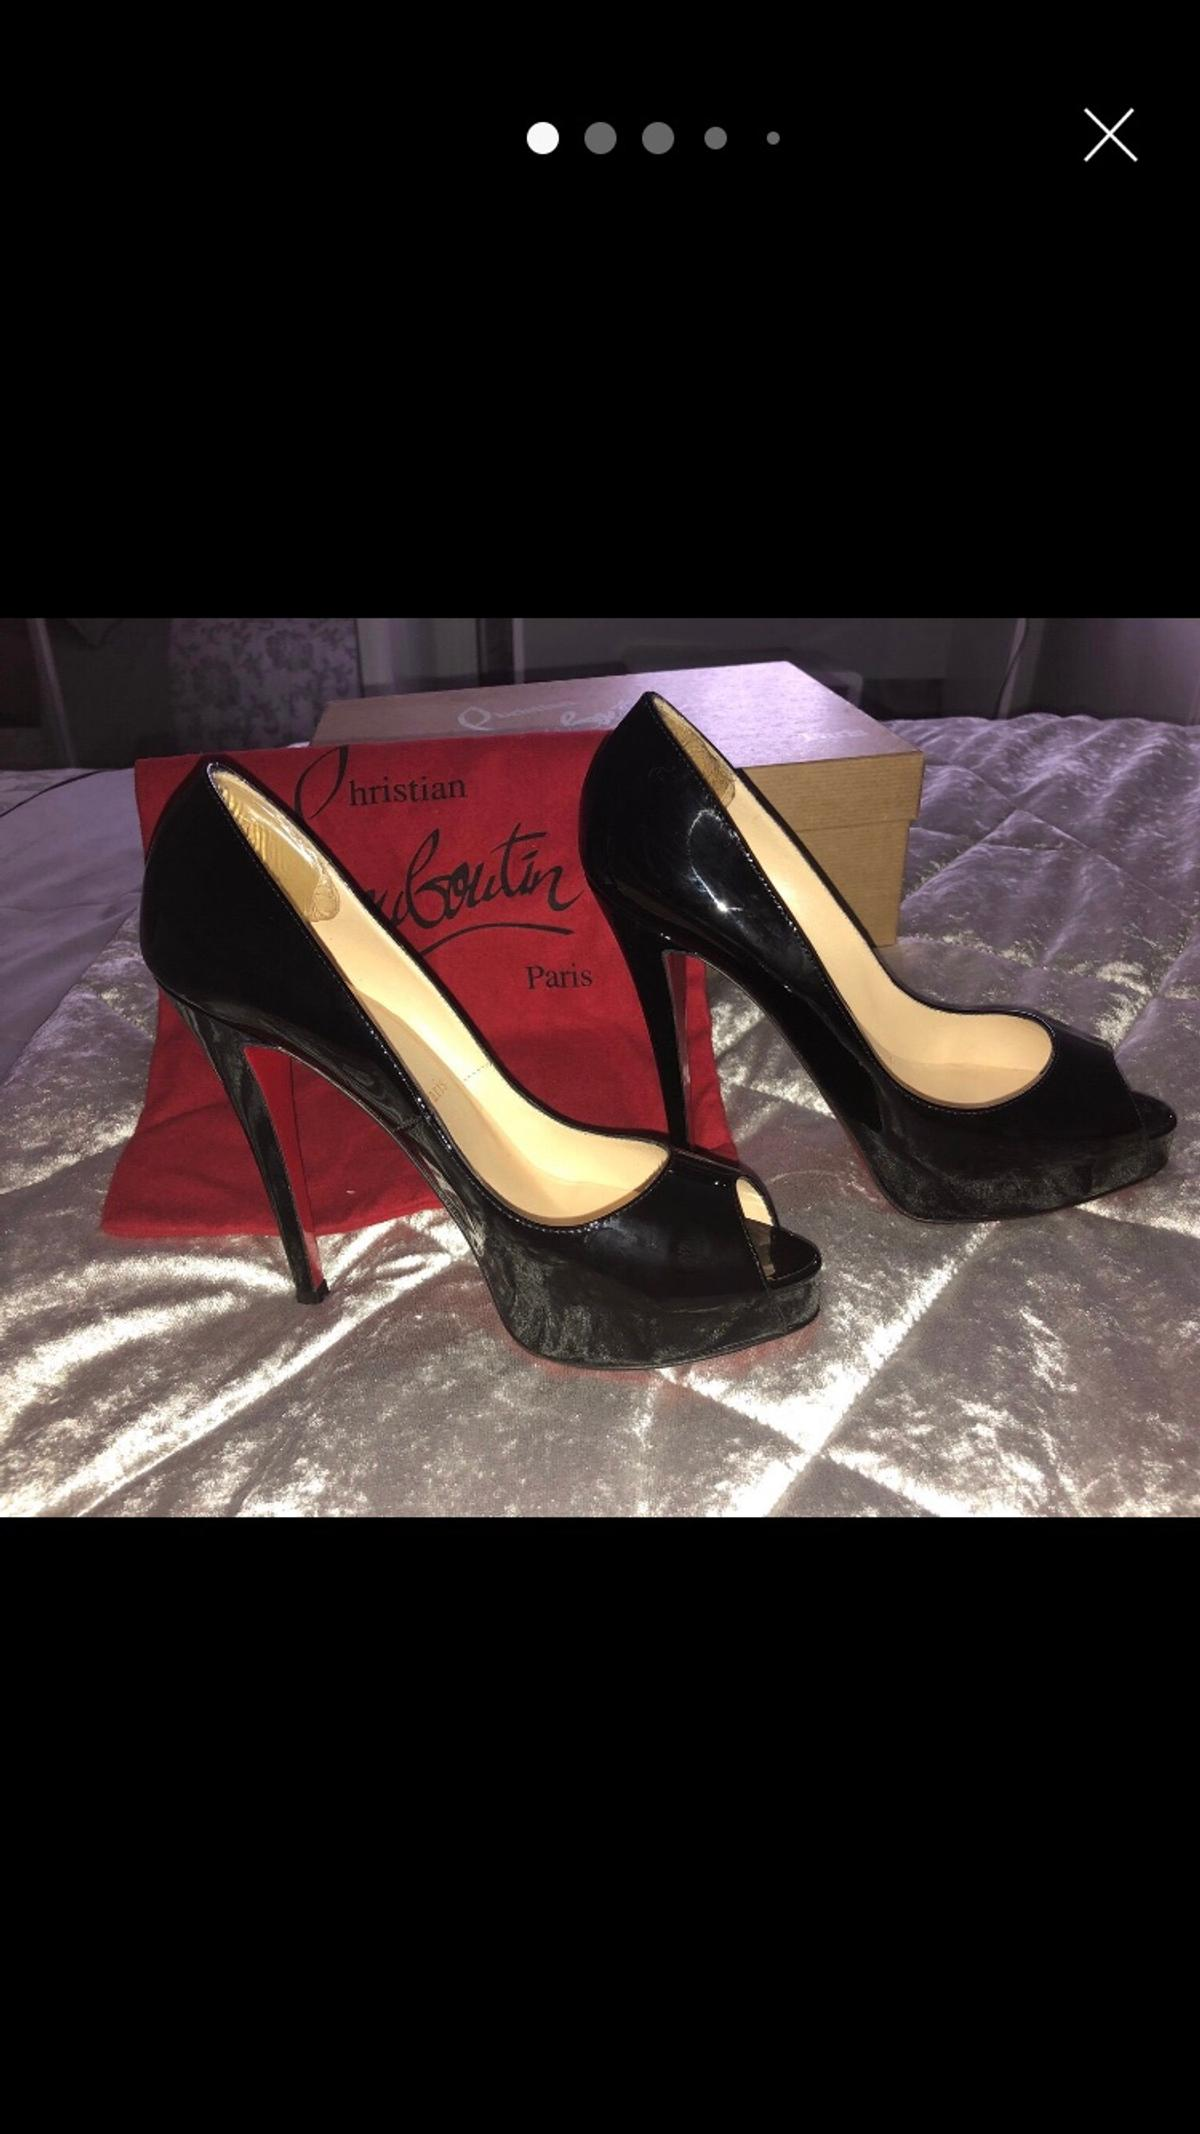 premium selection 6728d 00223 Christian Louboutin Very Prive 120 Size 4/37